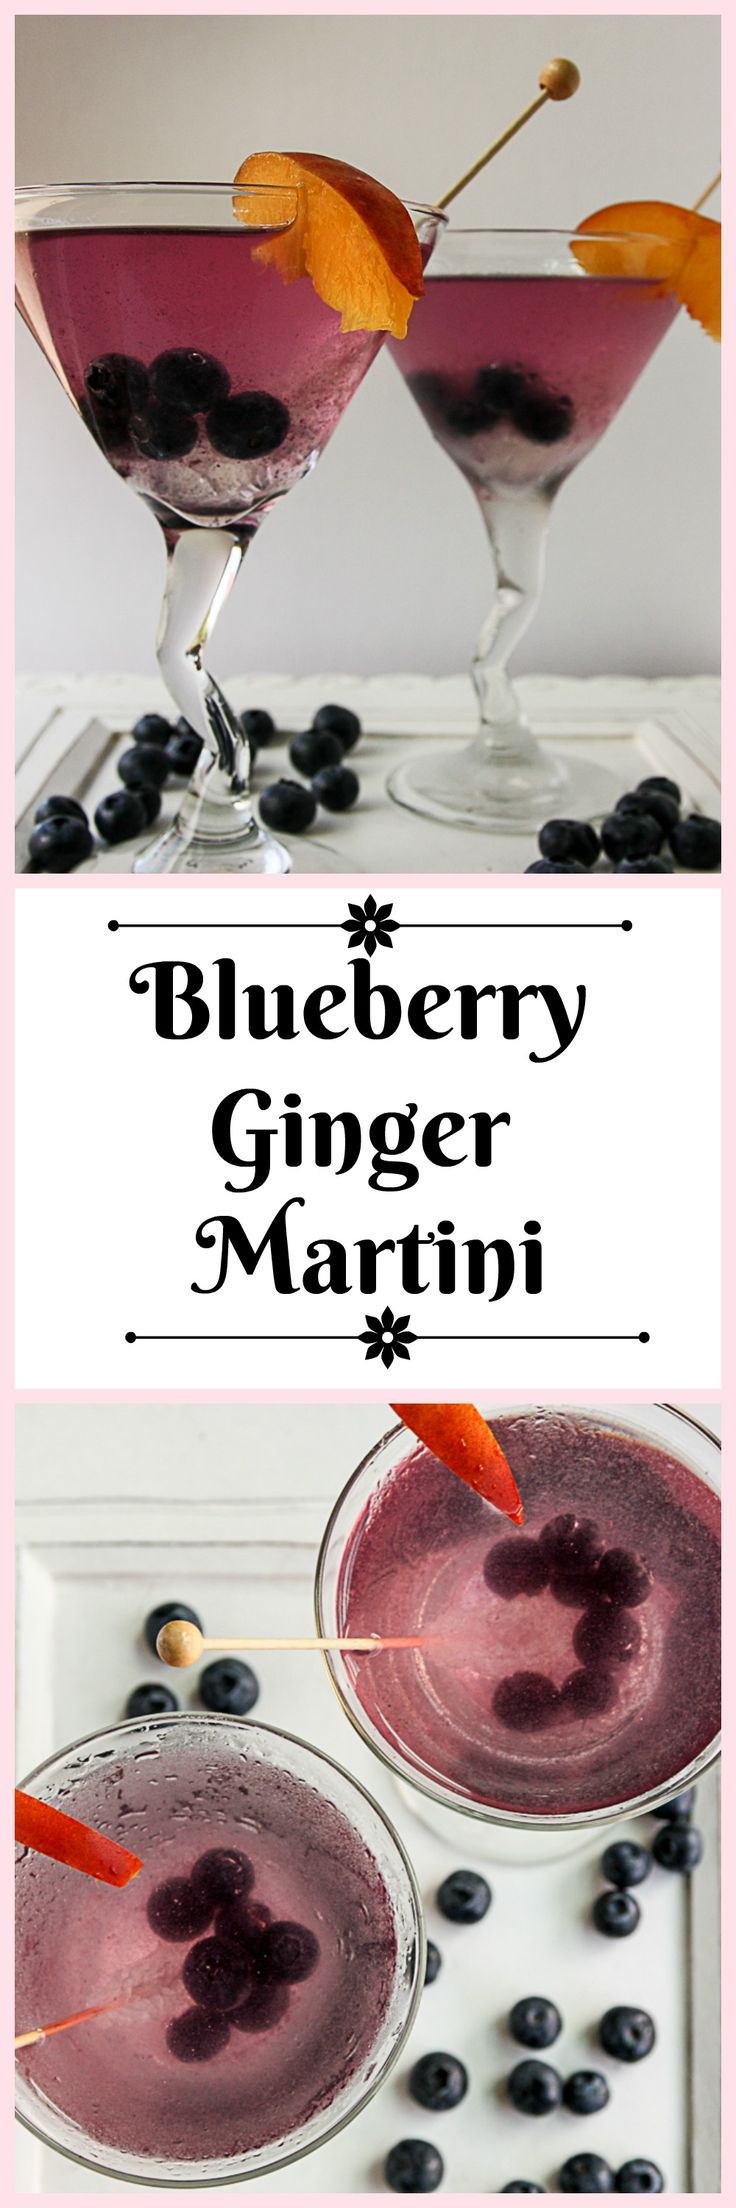 Blueberry & Ginger are a perfect pair in this pretty martini.